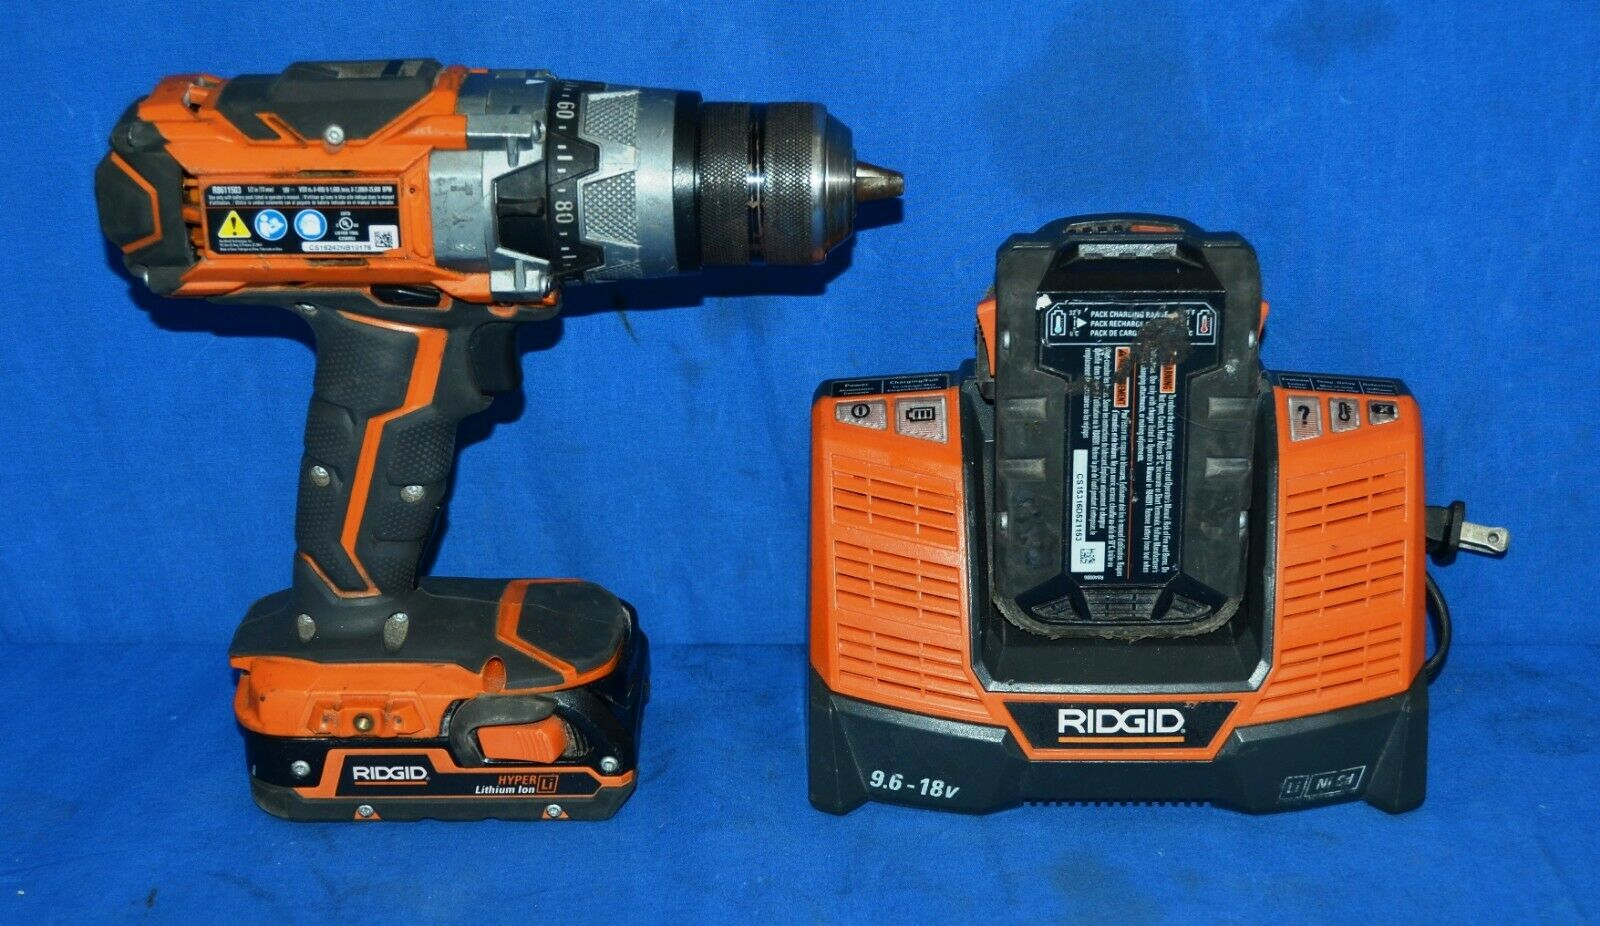 Ridgid R8611503 GEN5X 18V Lithium Hammer Drill with Charger & 2 batteries